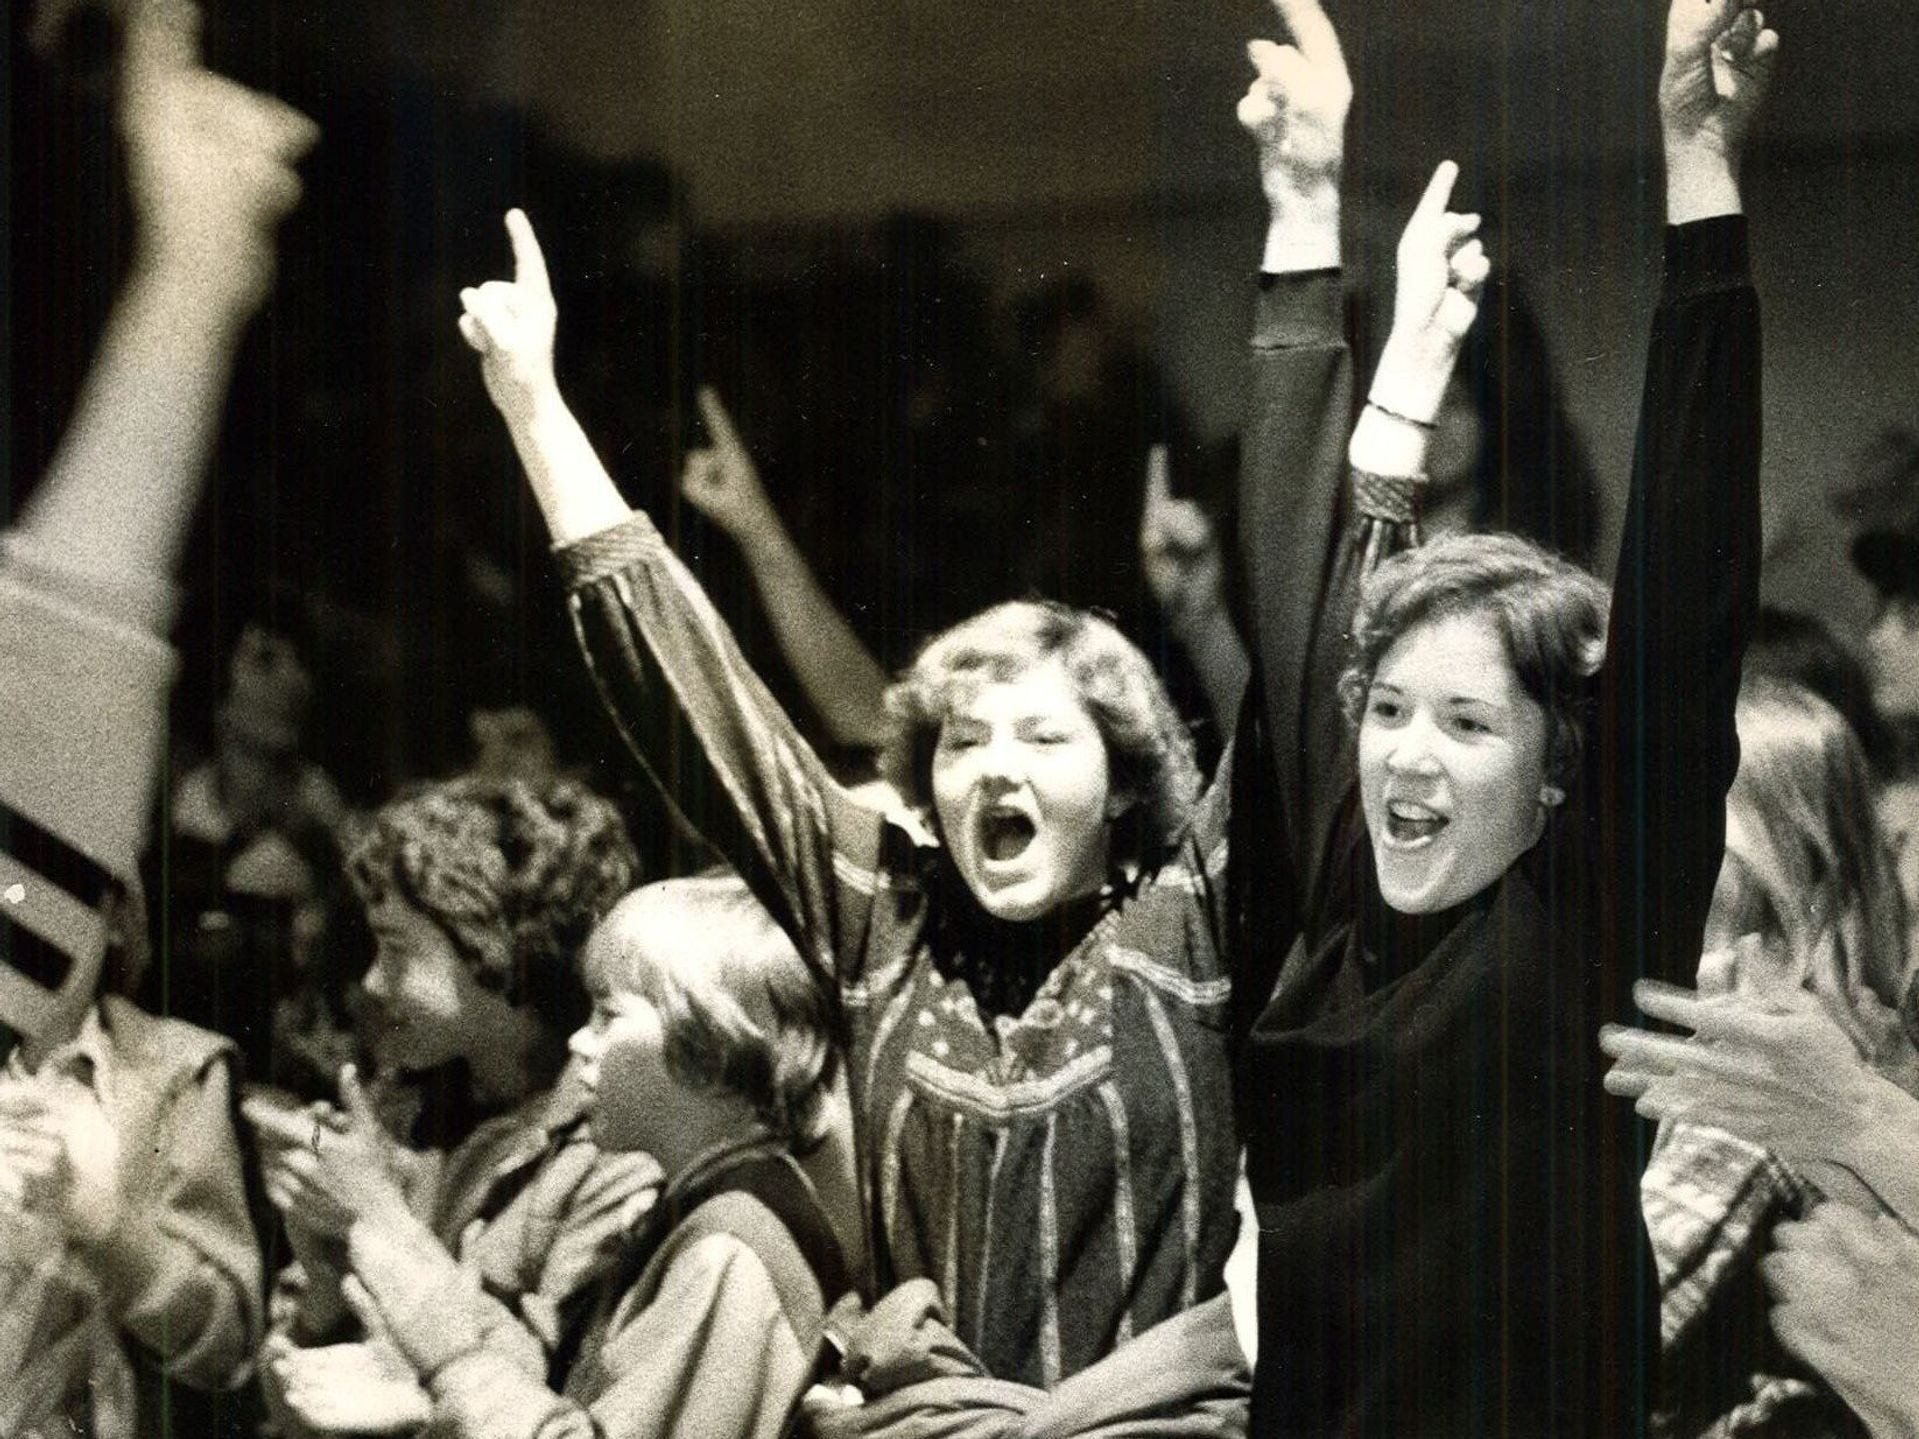 1977: Some 2,500 fans help Southeast Polk celebrate their girls' state basketball championship. Register file photo